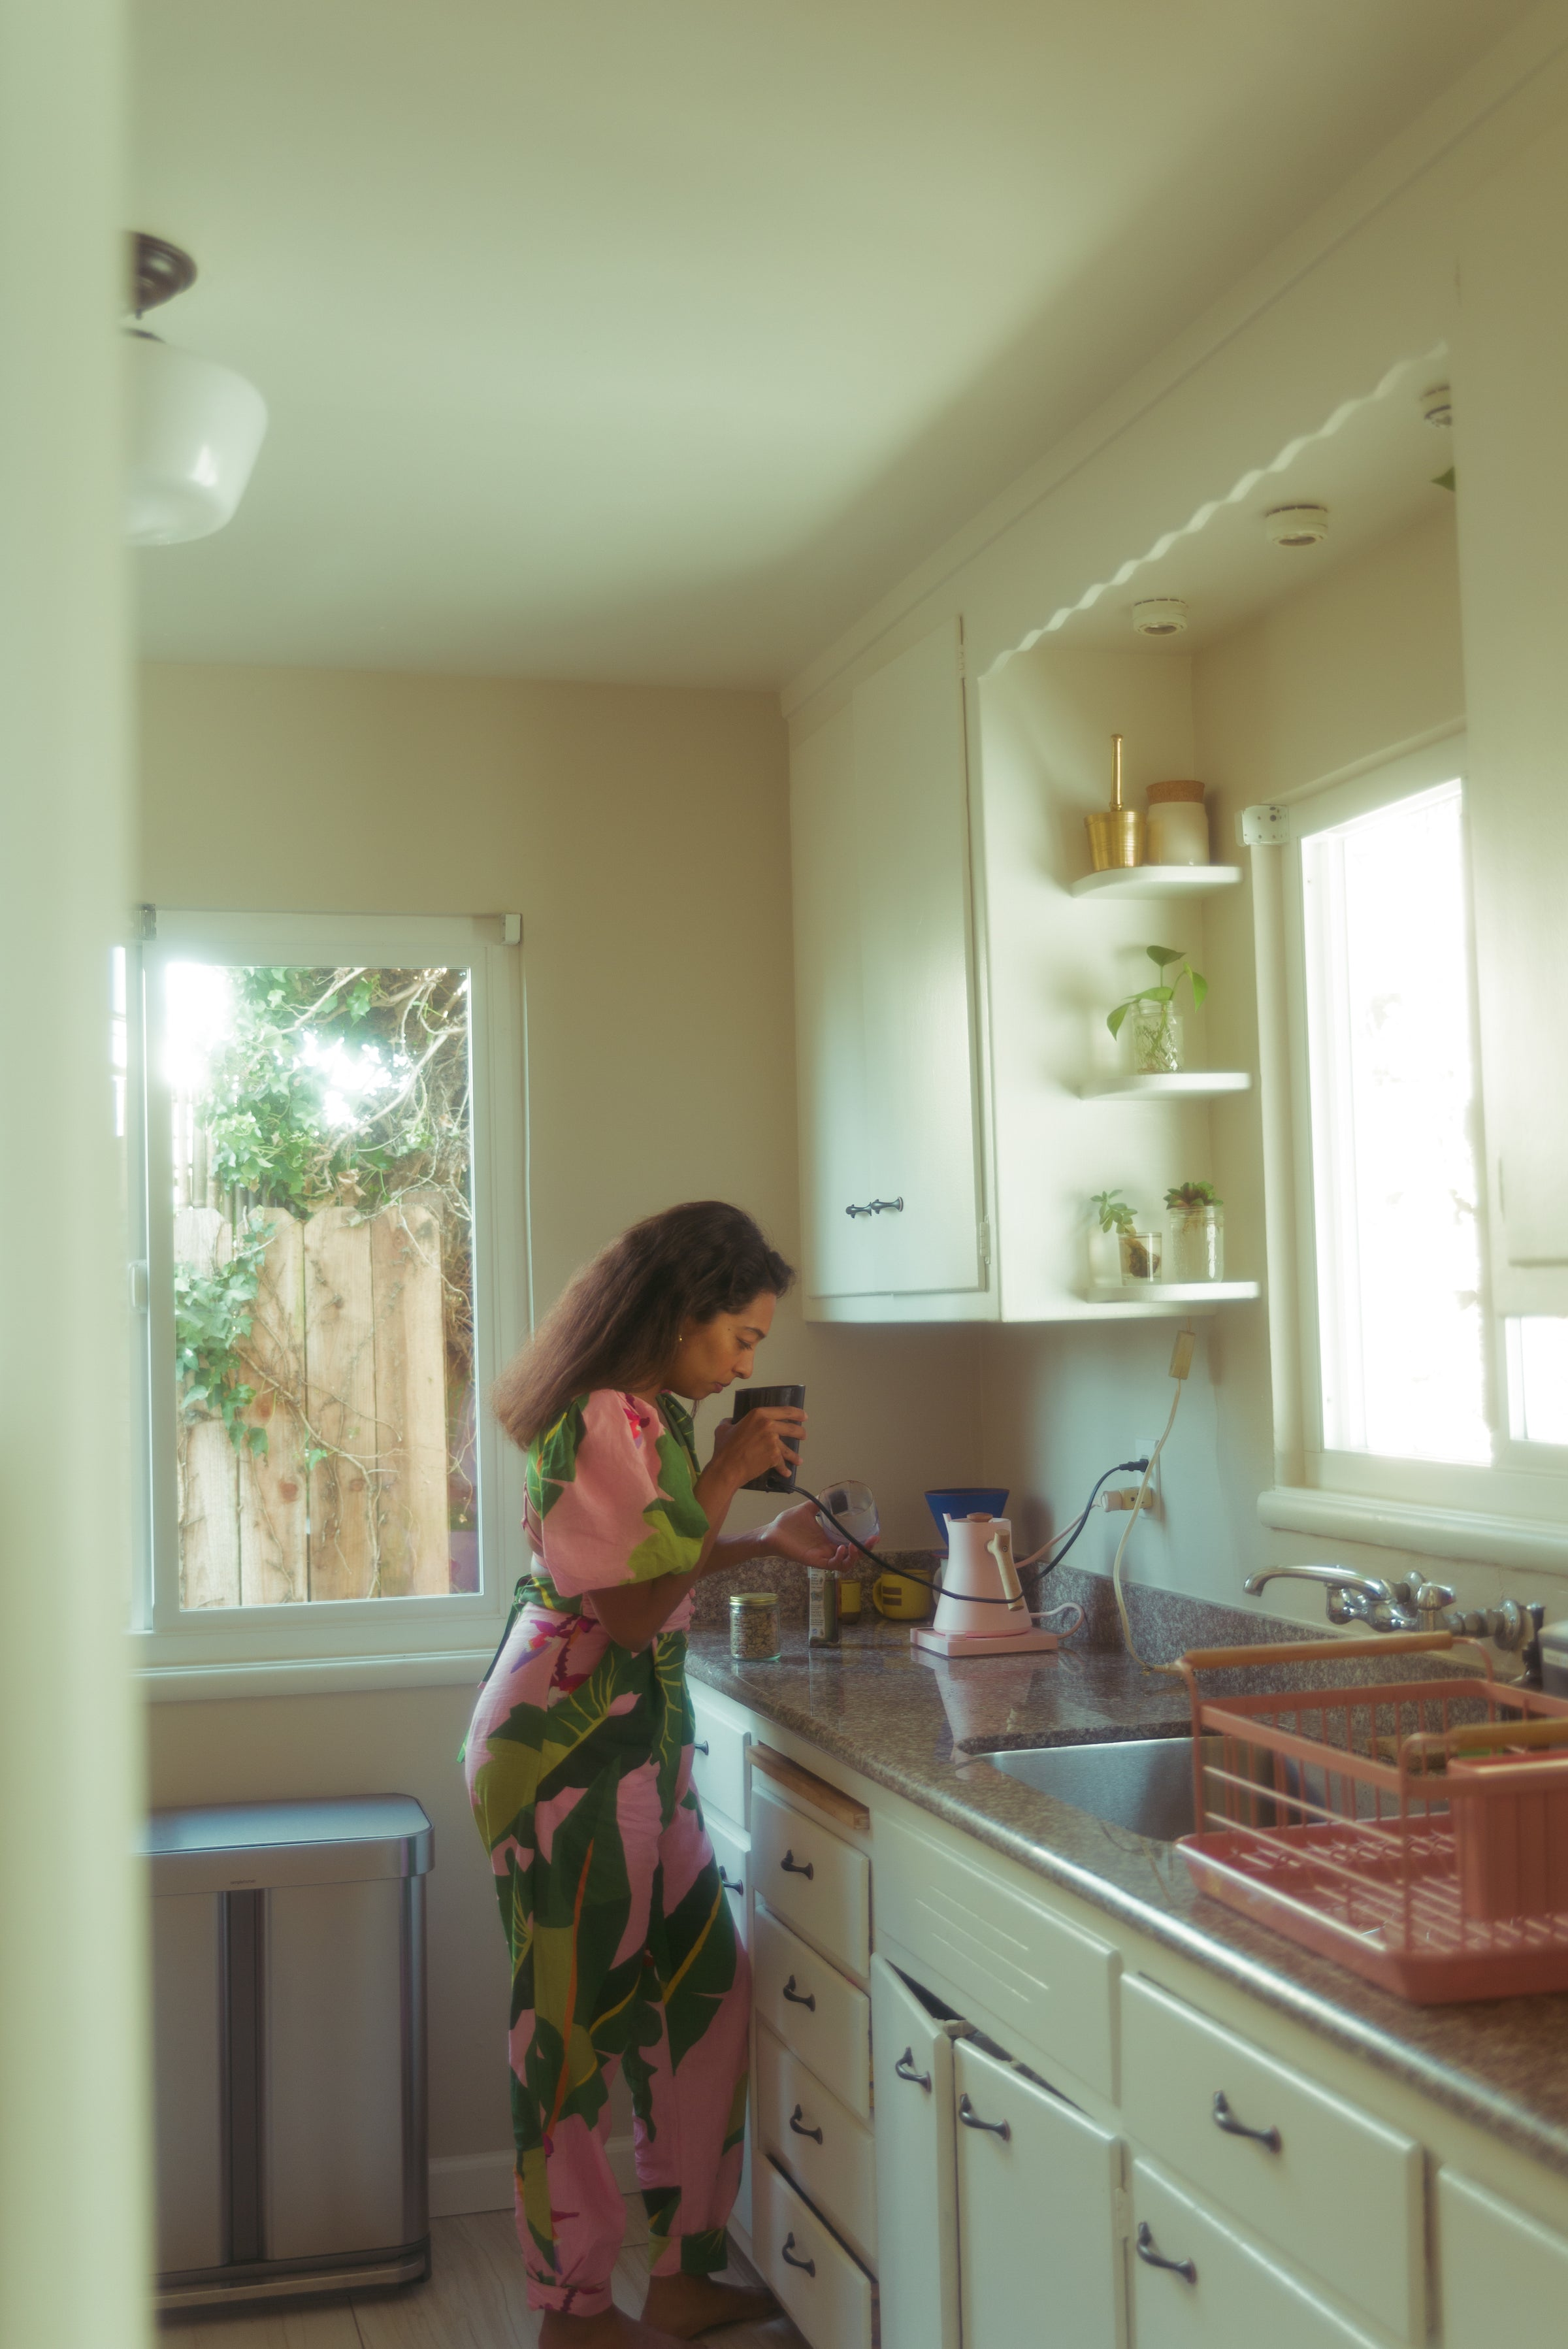 Sana Javeri Kadri in her home in Oakland, CA. Photo by Simrah Farrukh.